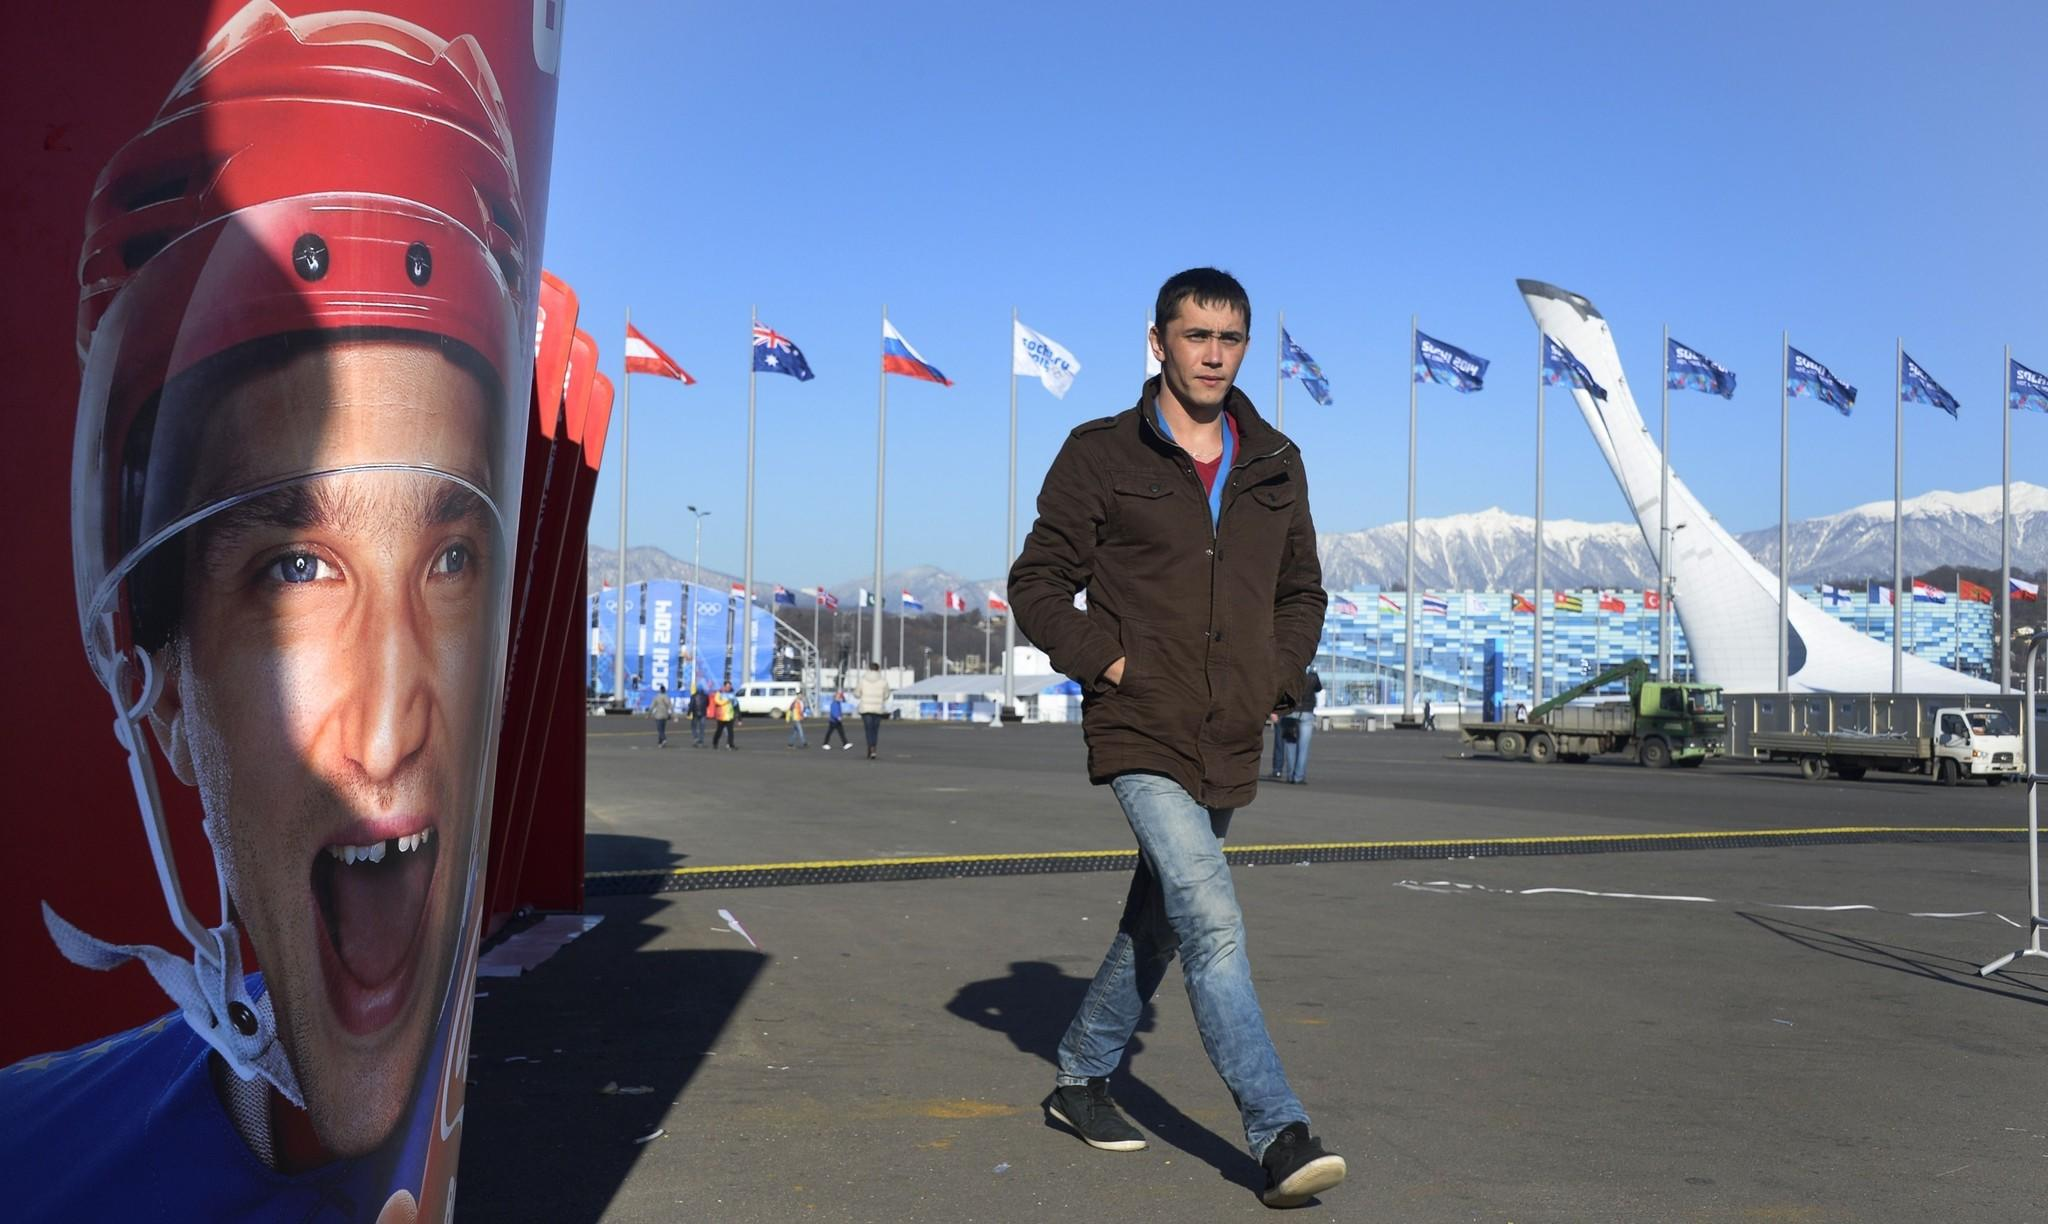 A man walks past a poster of Russian hockey star Alexander Ovechkin near the Olympic cauldron in the seaside cluster prior to the start of the 2014 Sochi Winter Olympics in Russia.